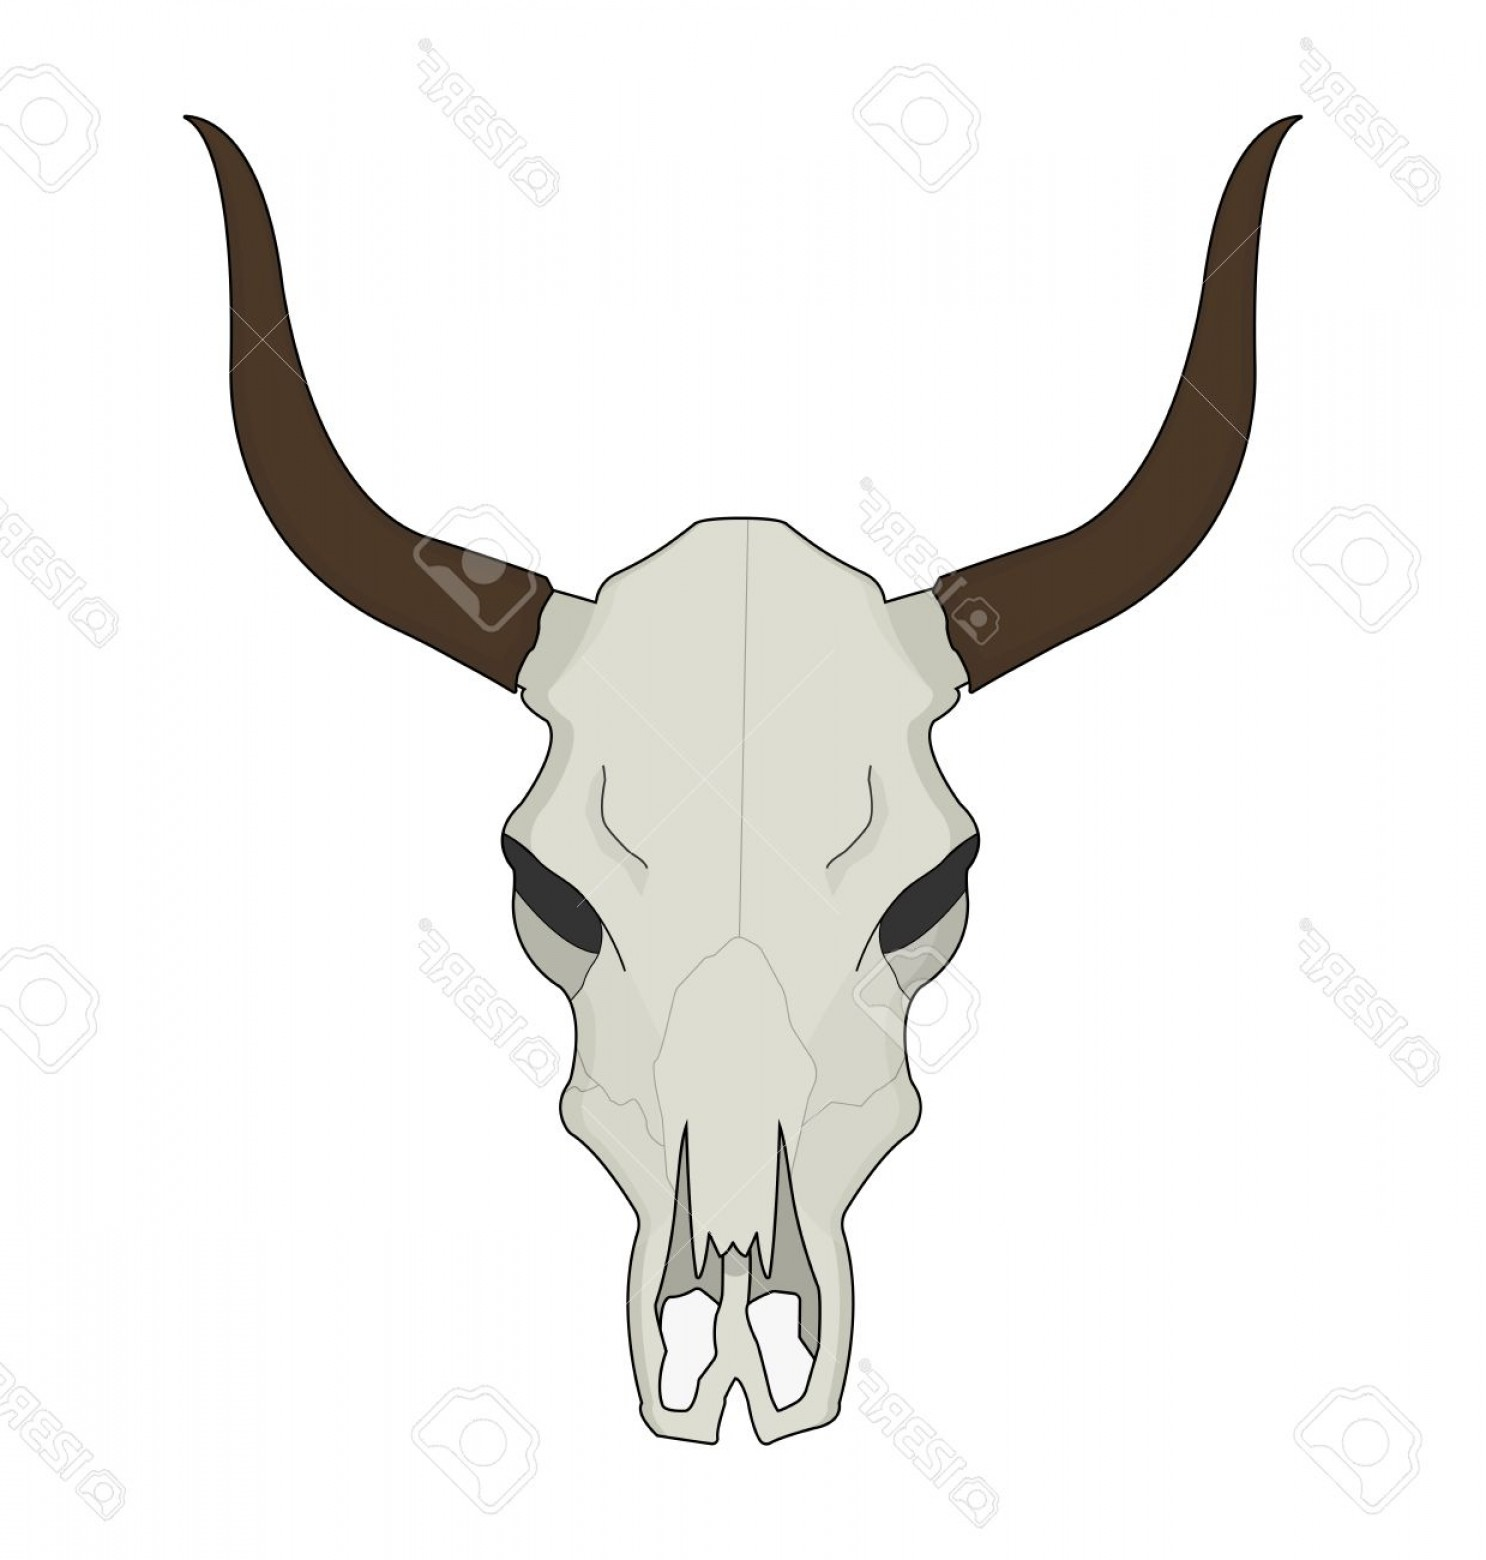 Longhorn Skull Vector: Photostock Vector Cow Skull Wild West Dead Longhorn Head Color Western Vector Illustration Isolated On White